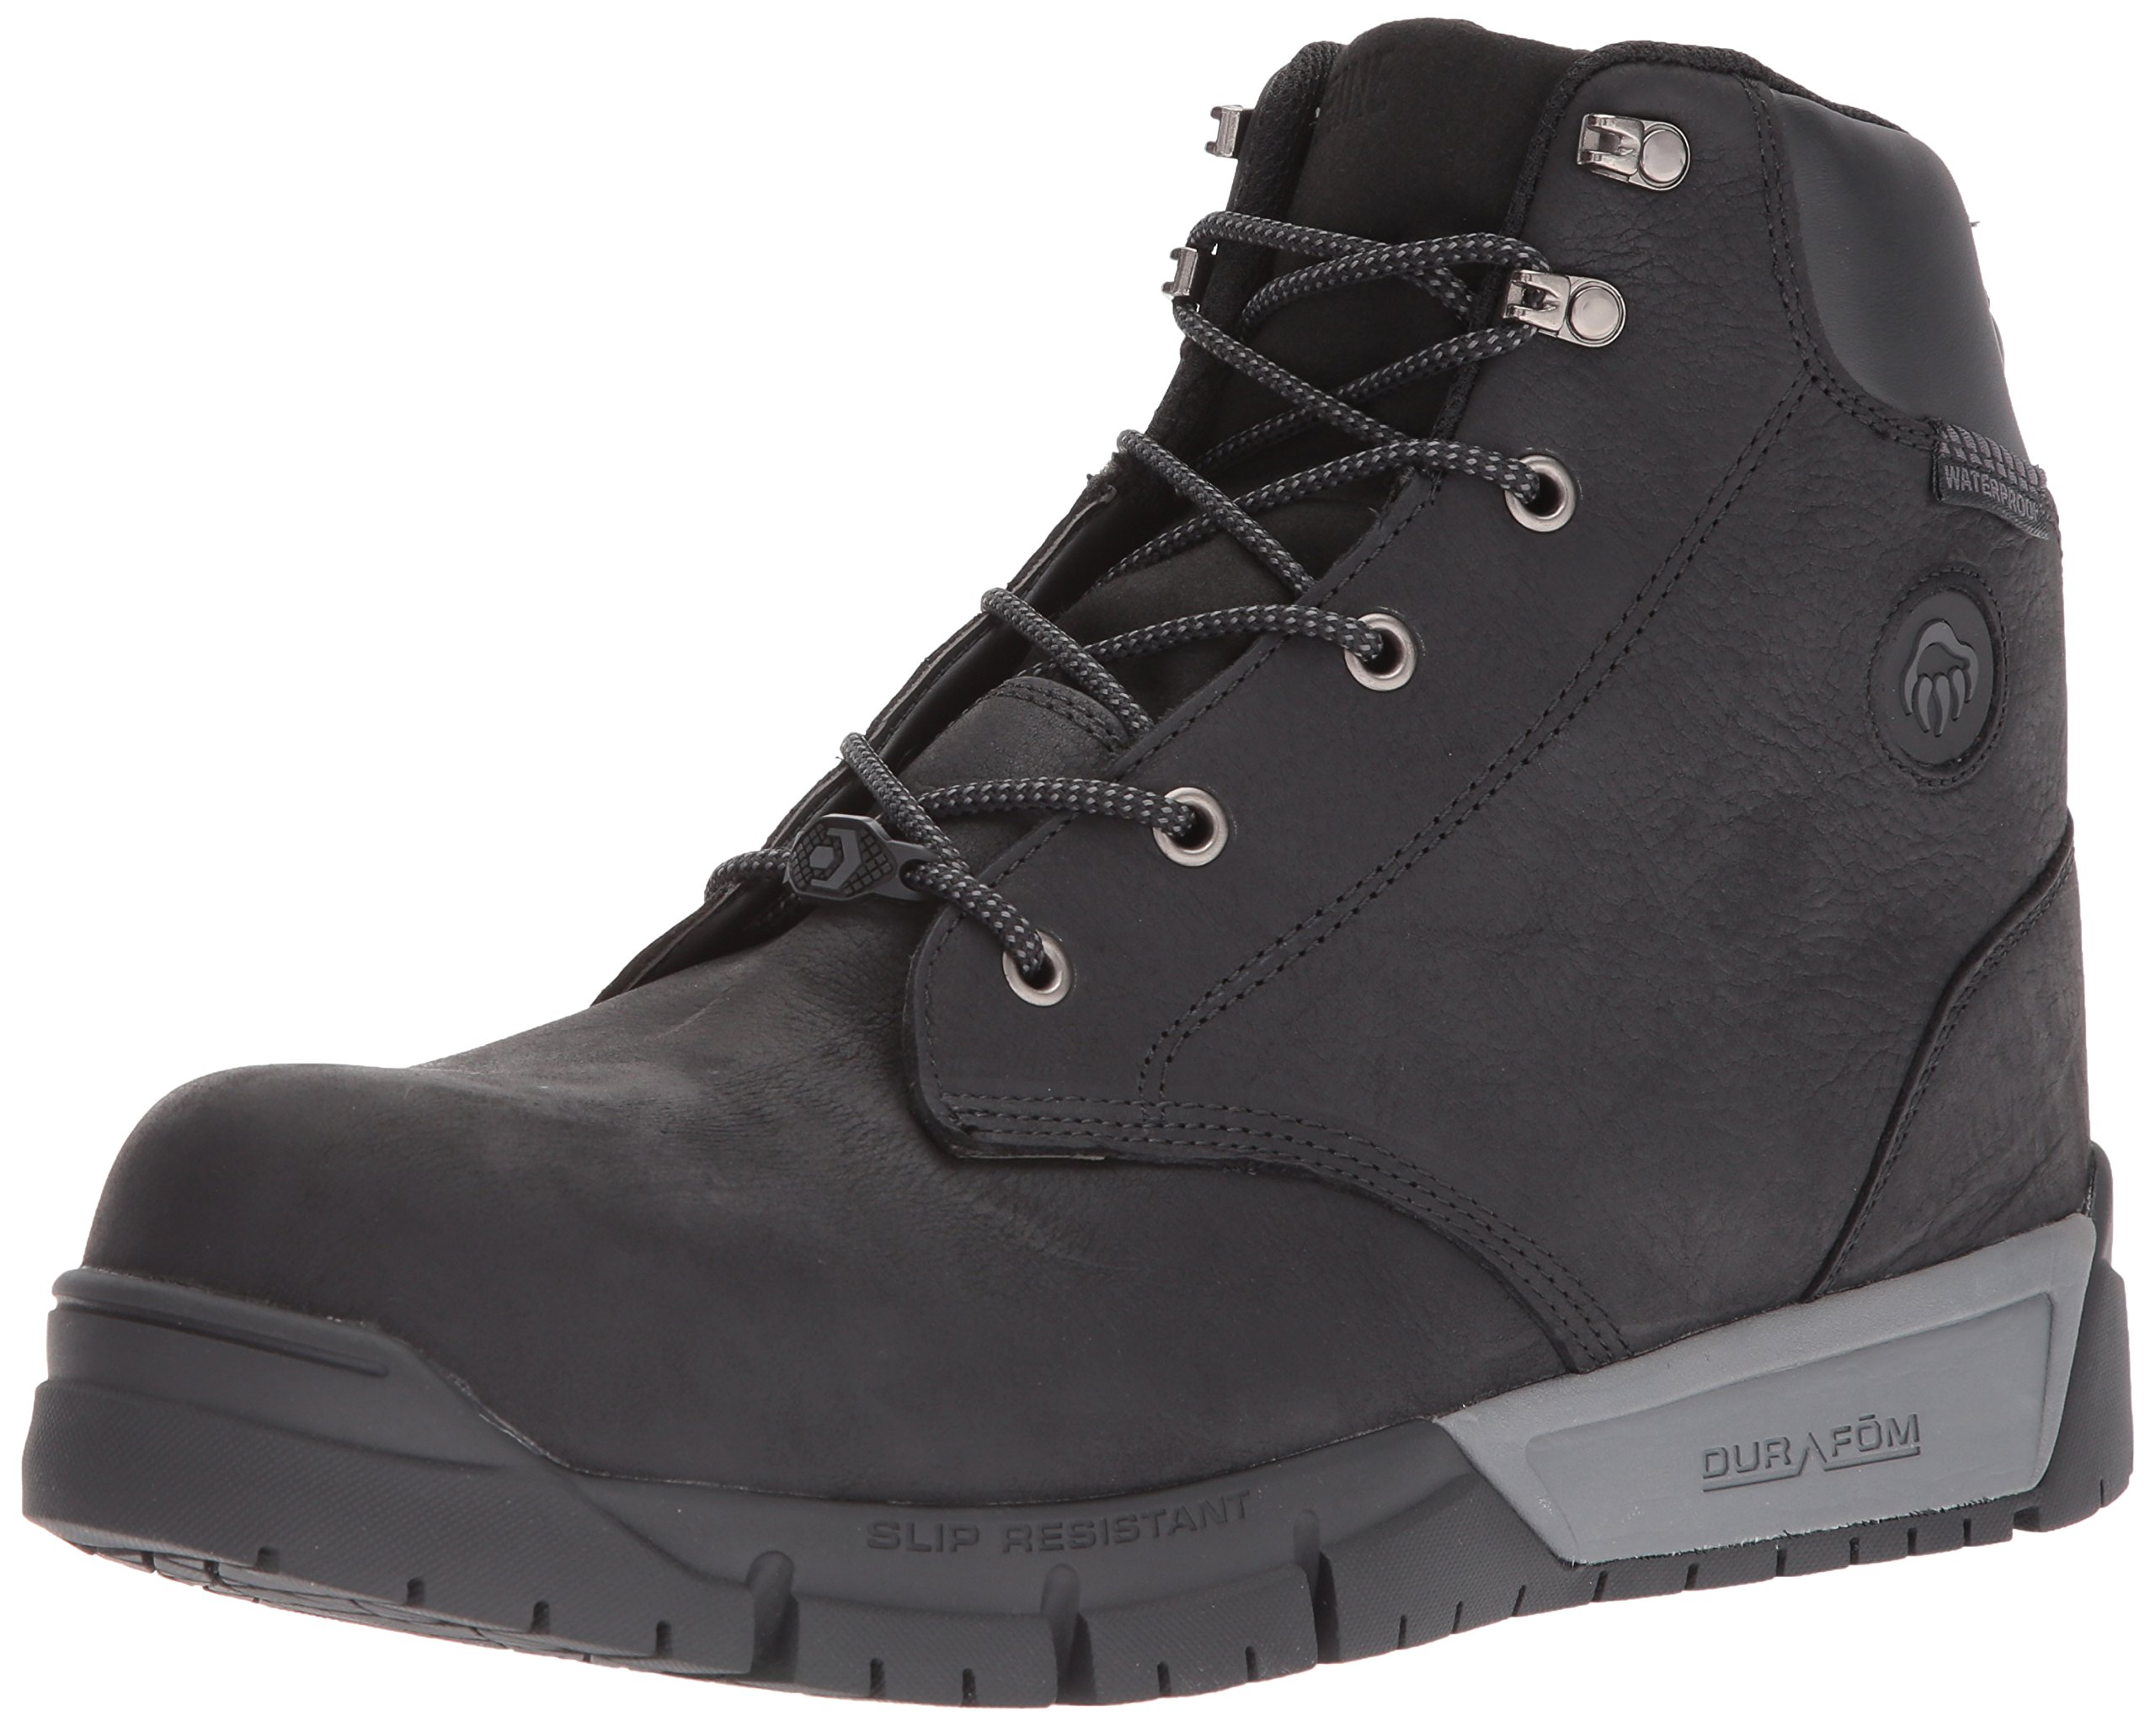 Wolverine Men's Mauler LX Composite Toe Waterproof Work Boot Black 7 W US by Wolverine (Image #1)